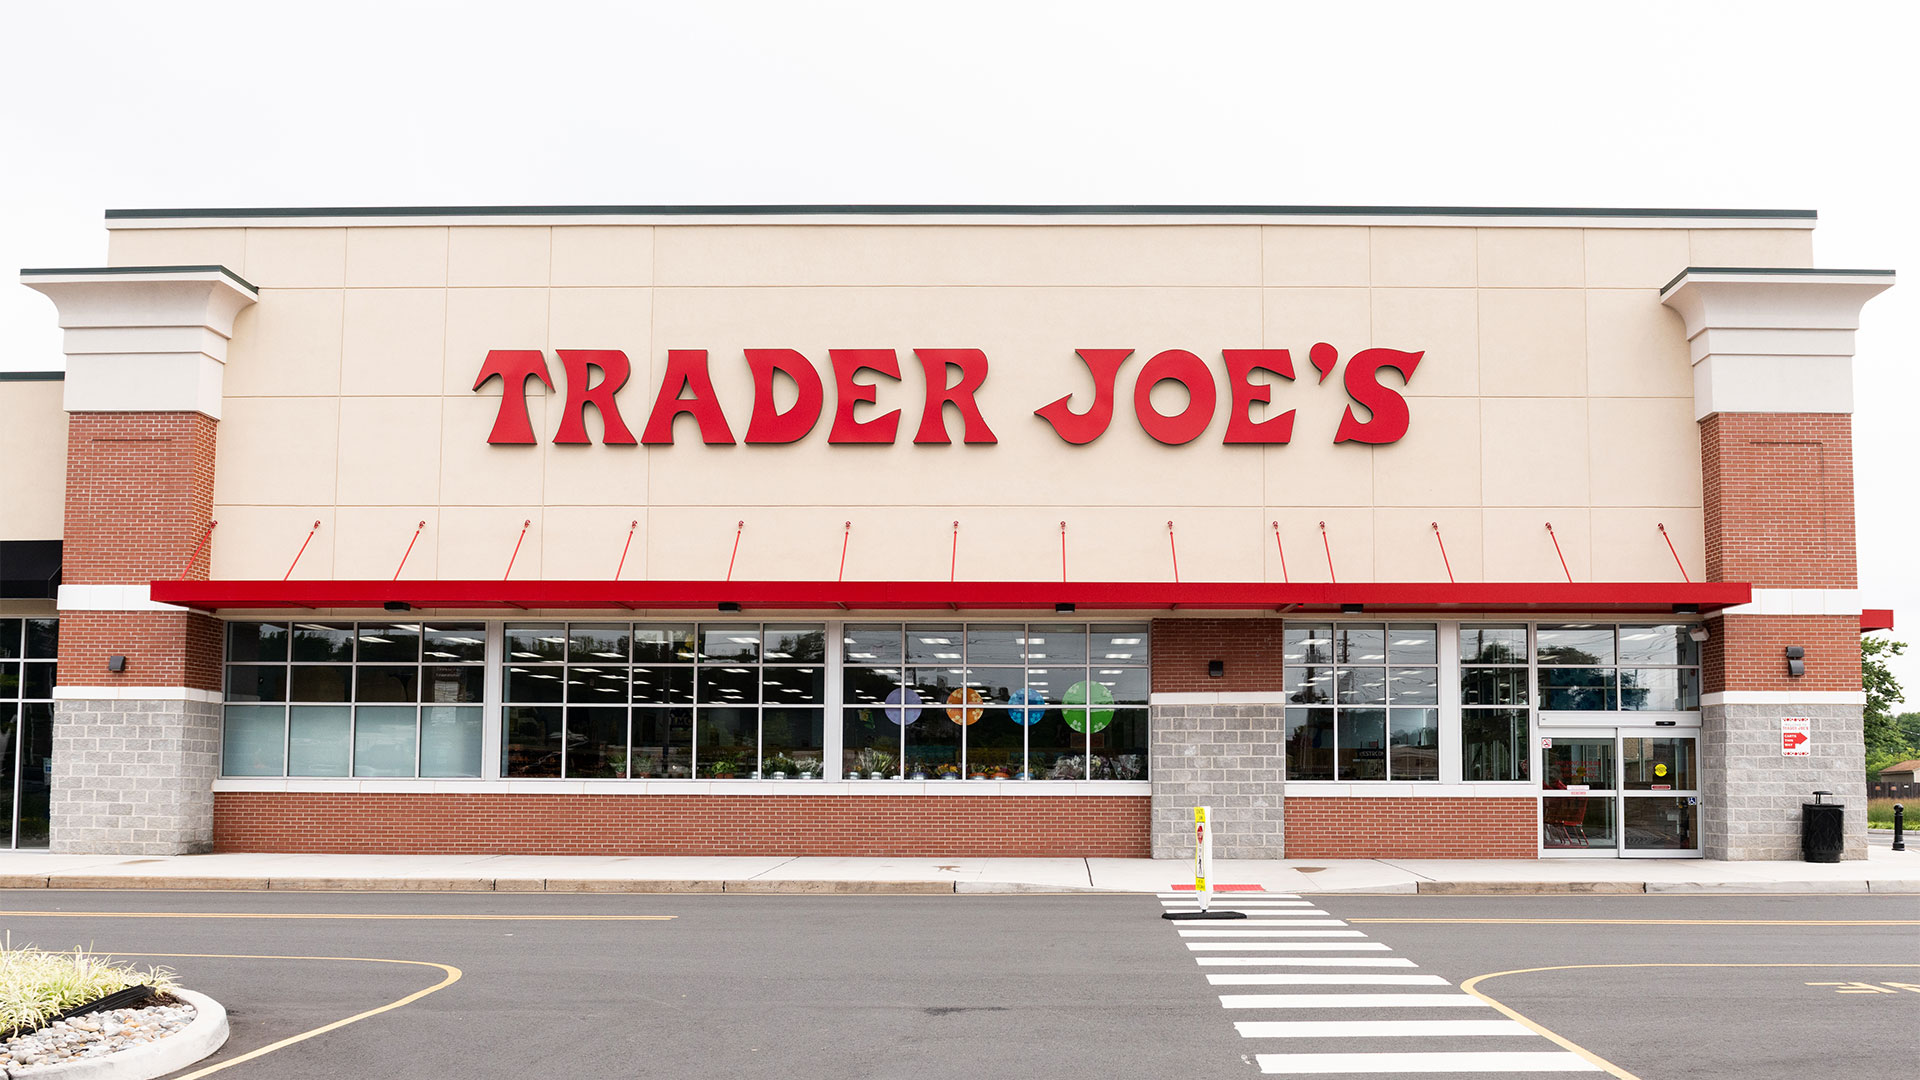 16 Healthy Non-Perishable Foods From Trader Joe's That Are Under $3